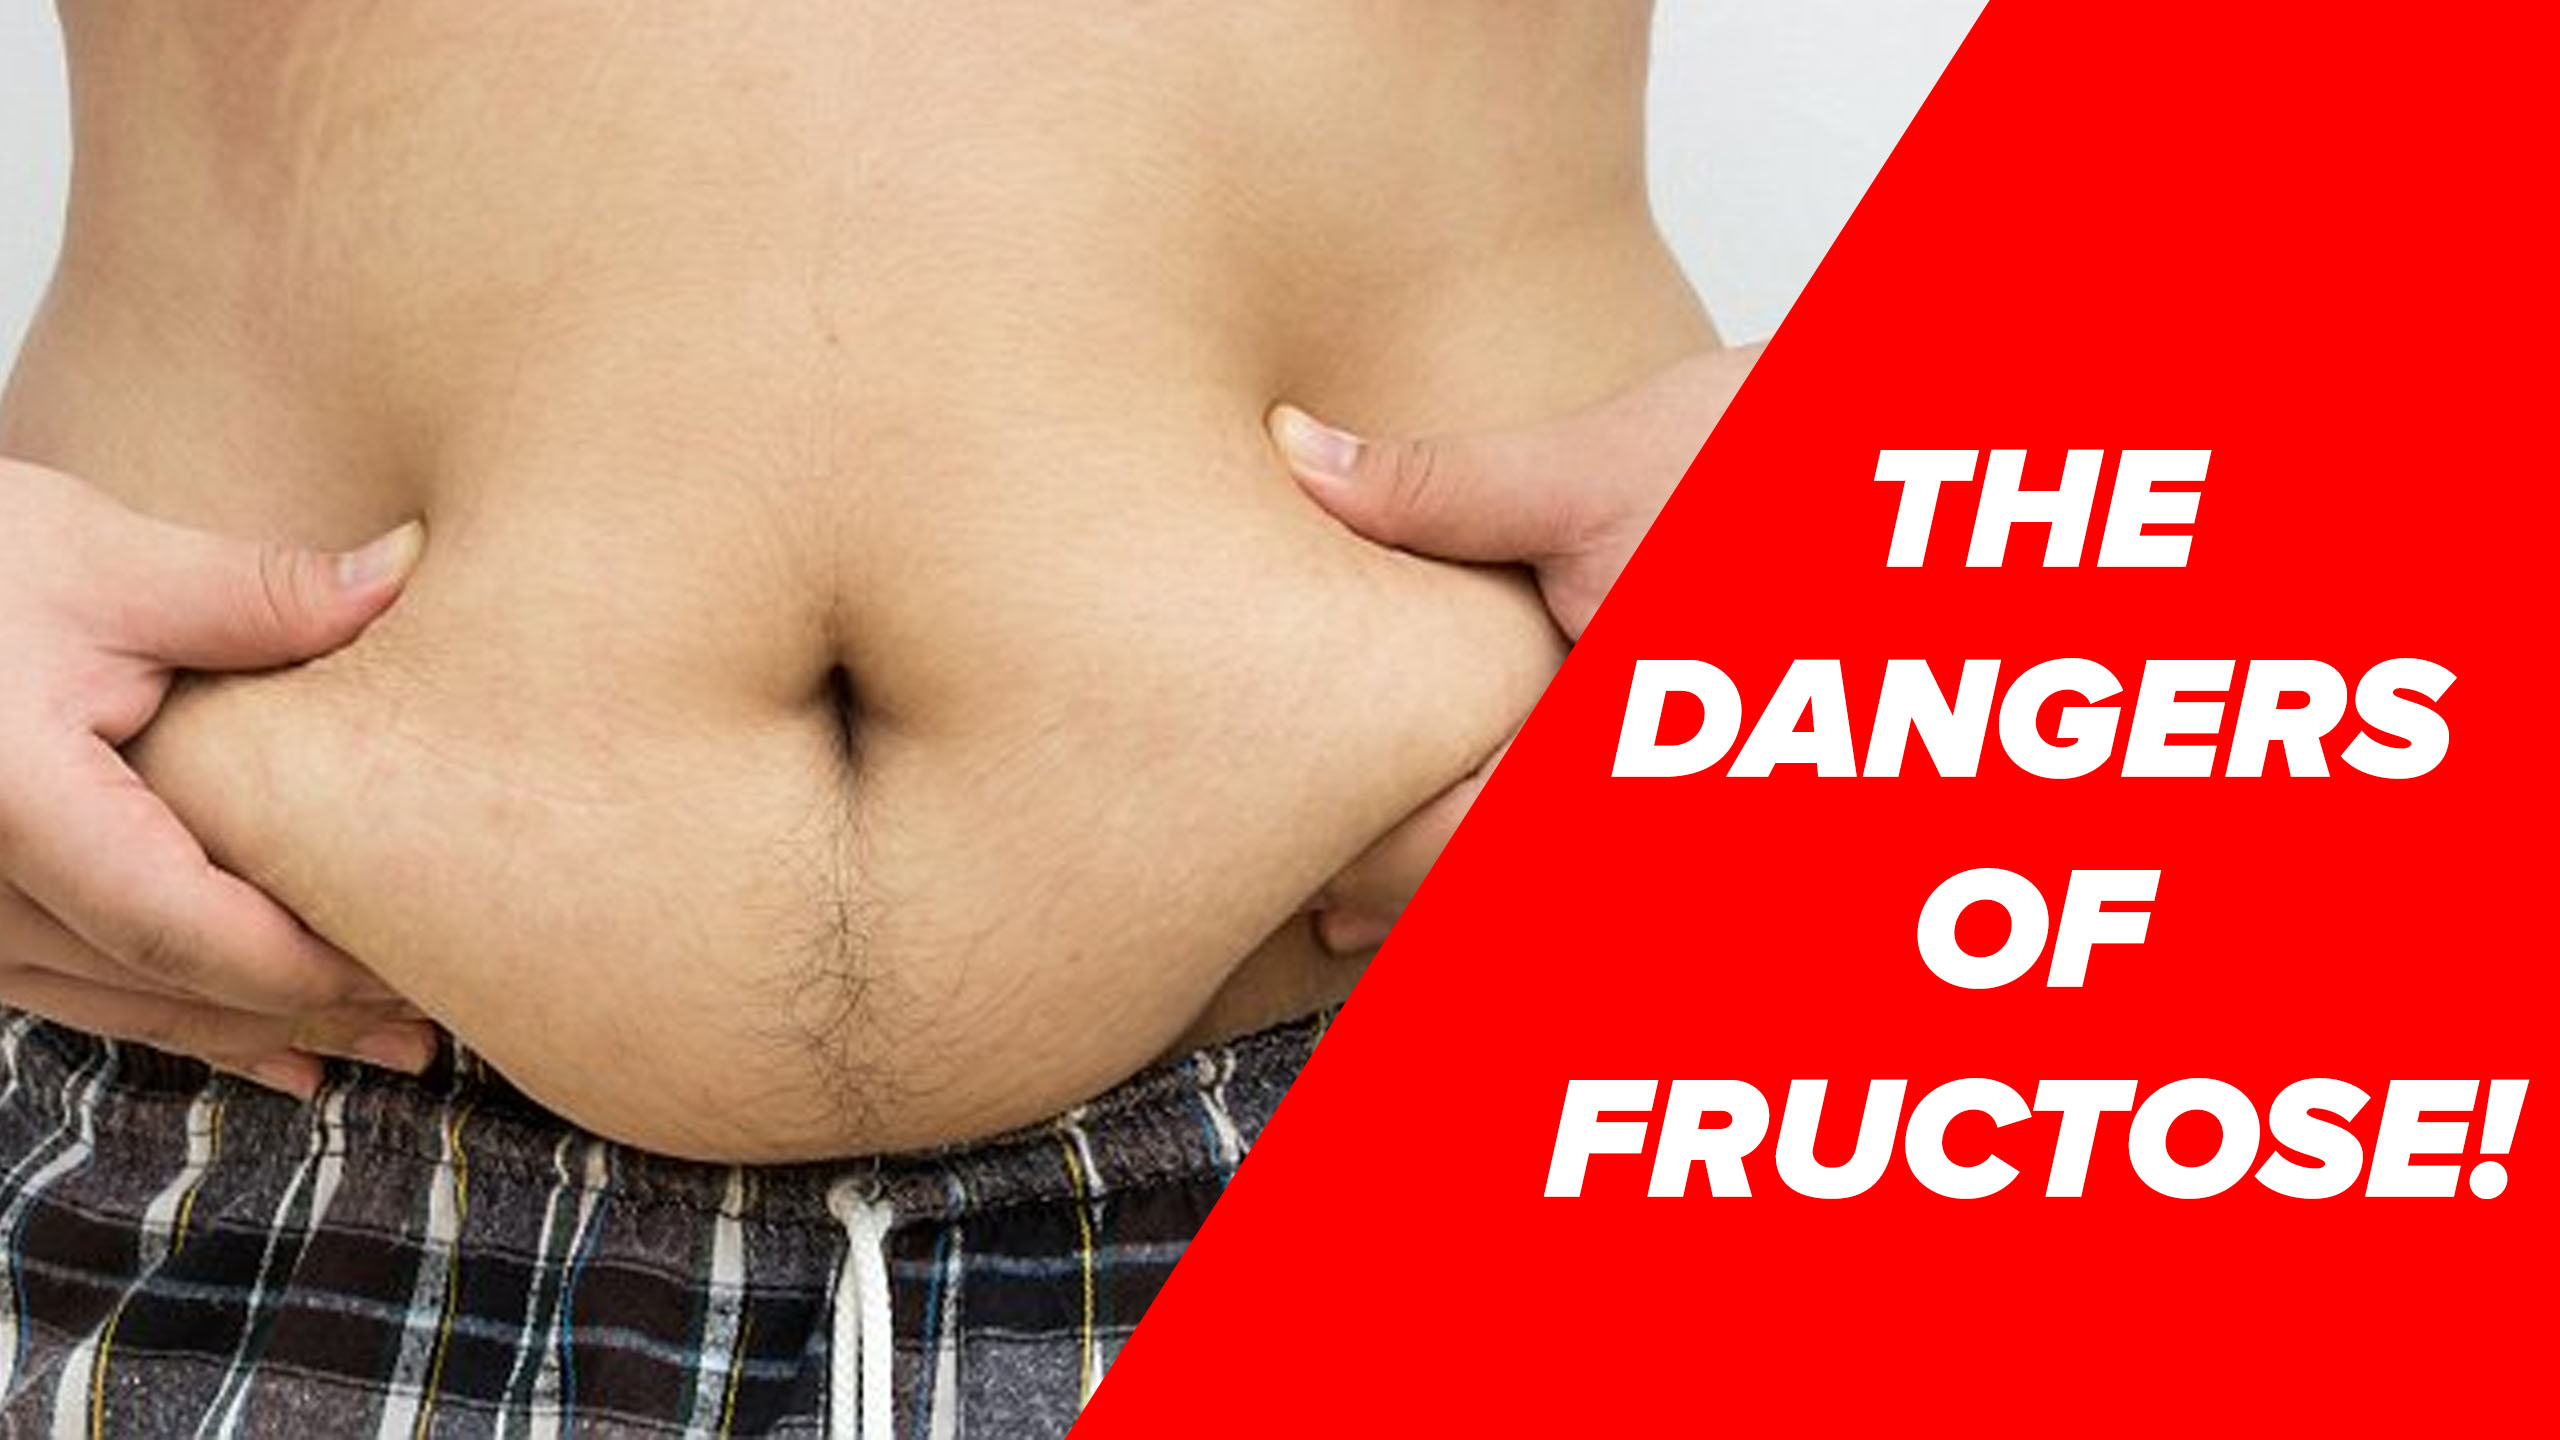 evils of fructose